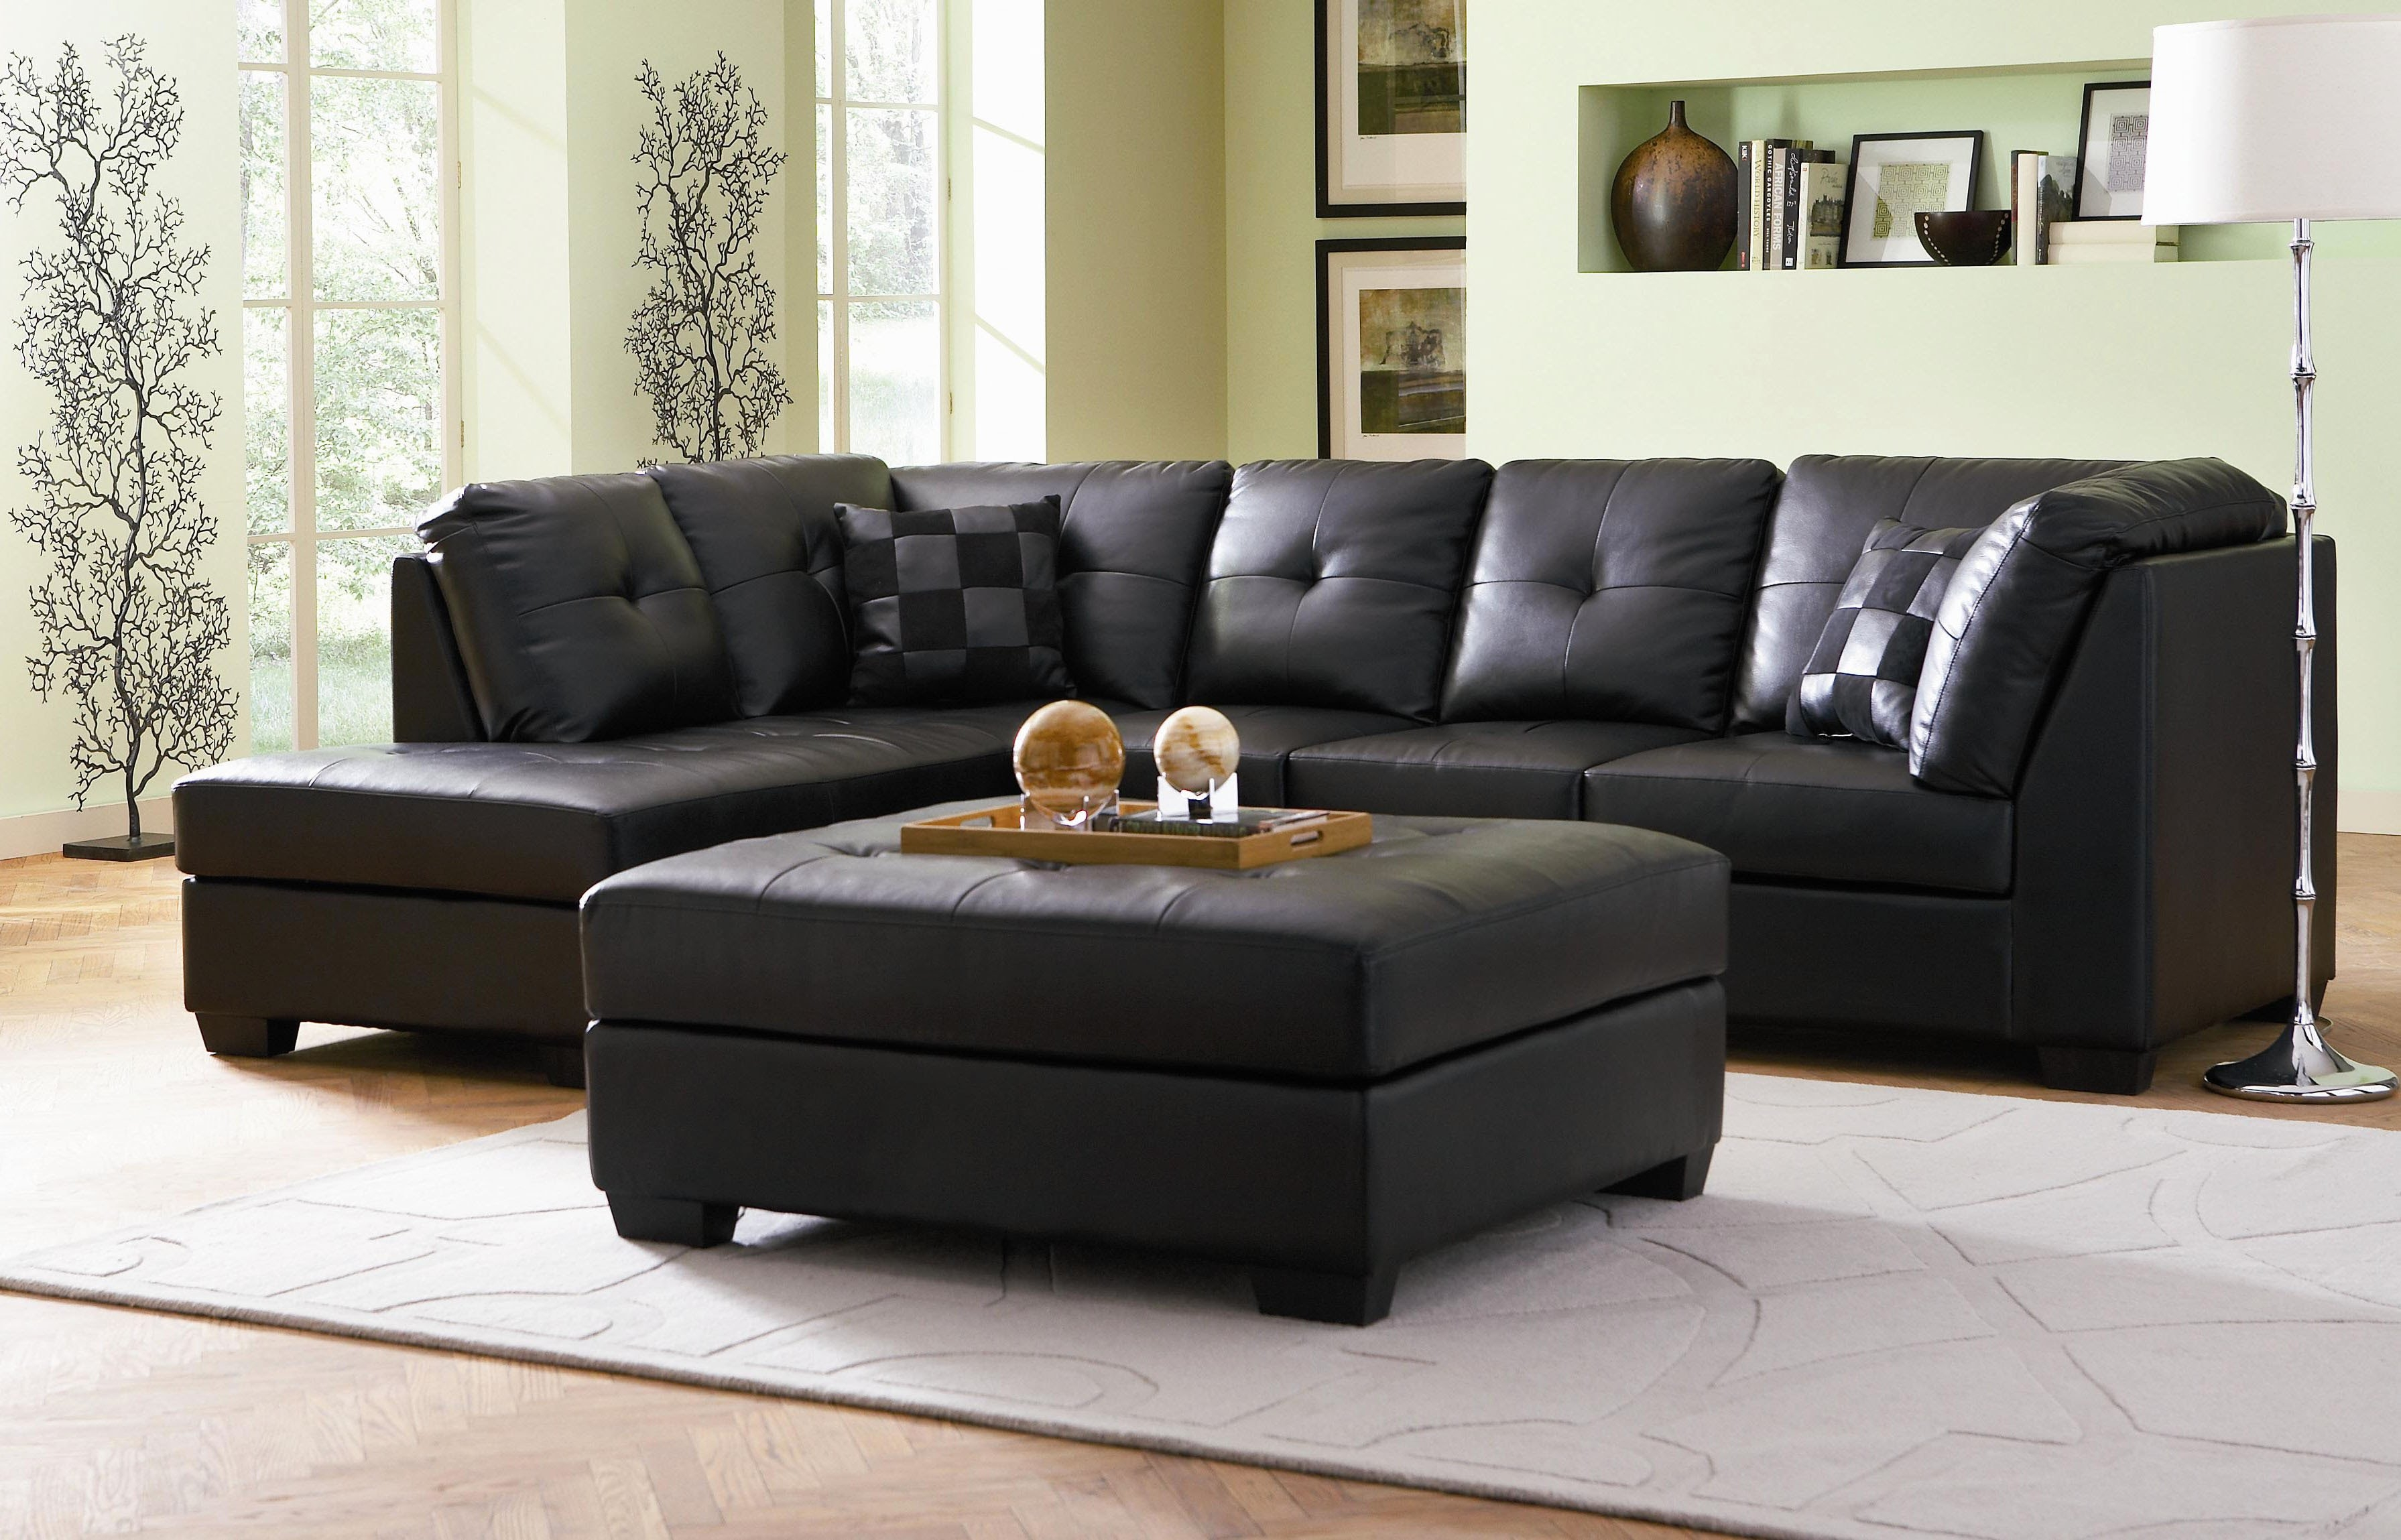 Best Sectional Sofa For Sale Cheap 71 For Albany Industries Intended For Albany Industries Sectional Sofa